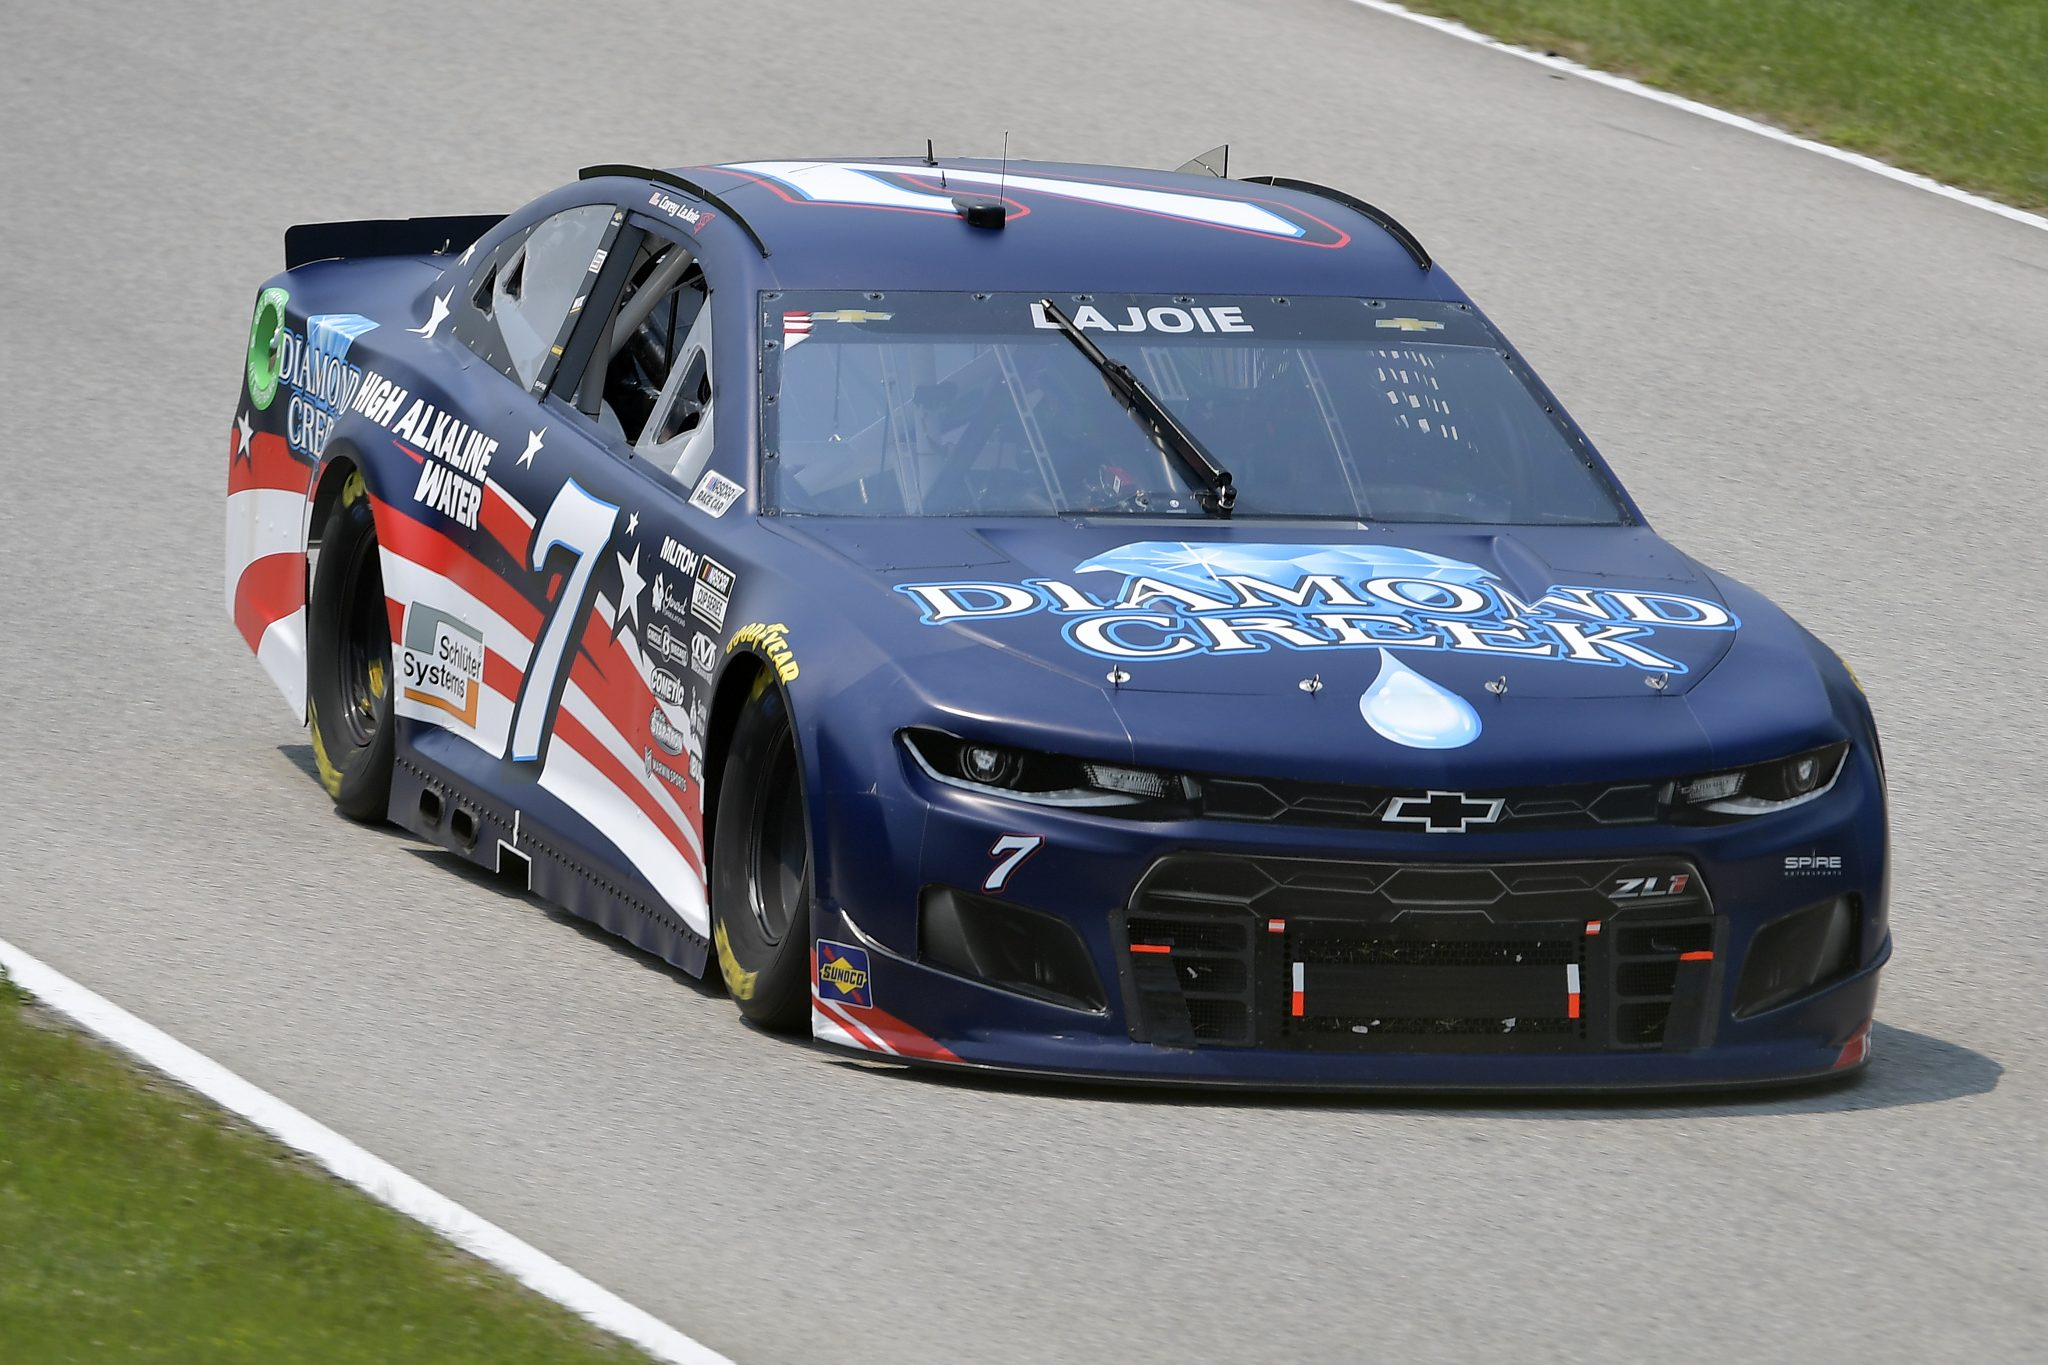 ELKHART LAKE, WISCONSIN - JULY 03: Corey LaJoie, driver of the #7 Diamond Creek Water Chevrolet, drives during practice for the NASCAR Cup Series Jockey Made in America 250 Presented by Kwik Trip at Road America on July 03, 2021 in Elkhart Lake, Wisconsin. (Photo by Logan Riely/Getty Images)   Getty Images